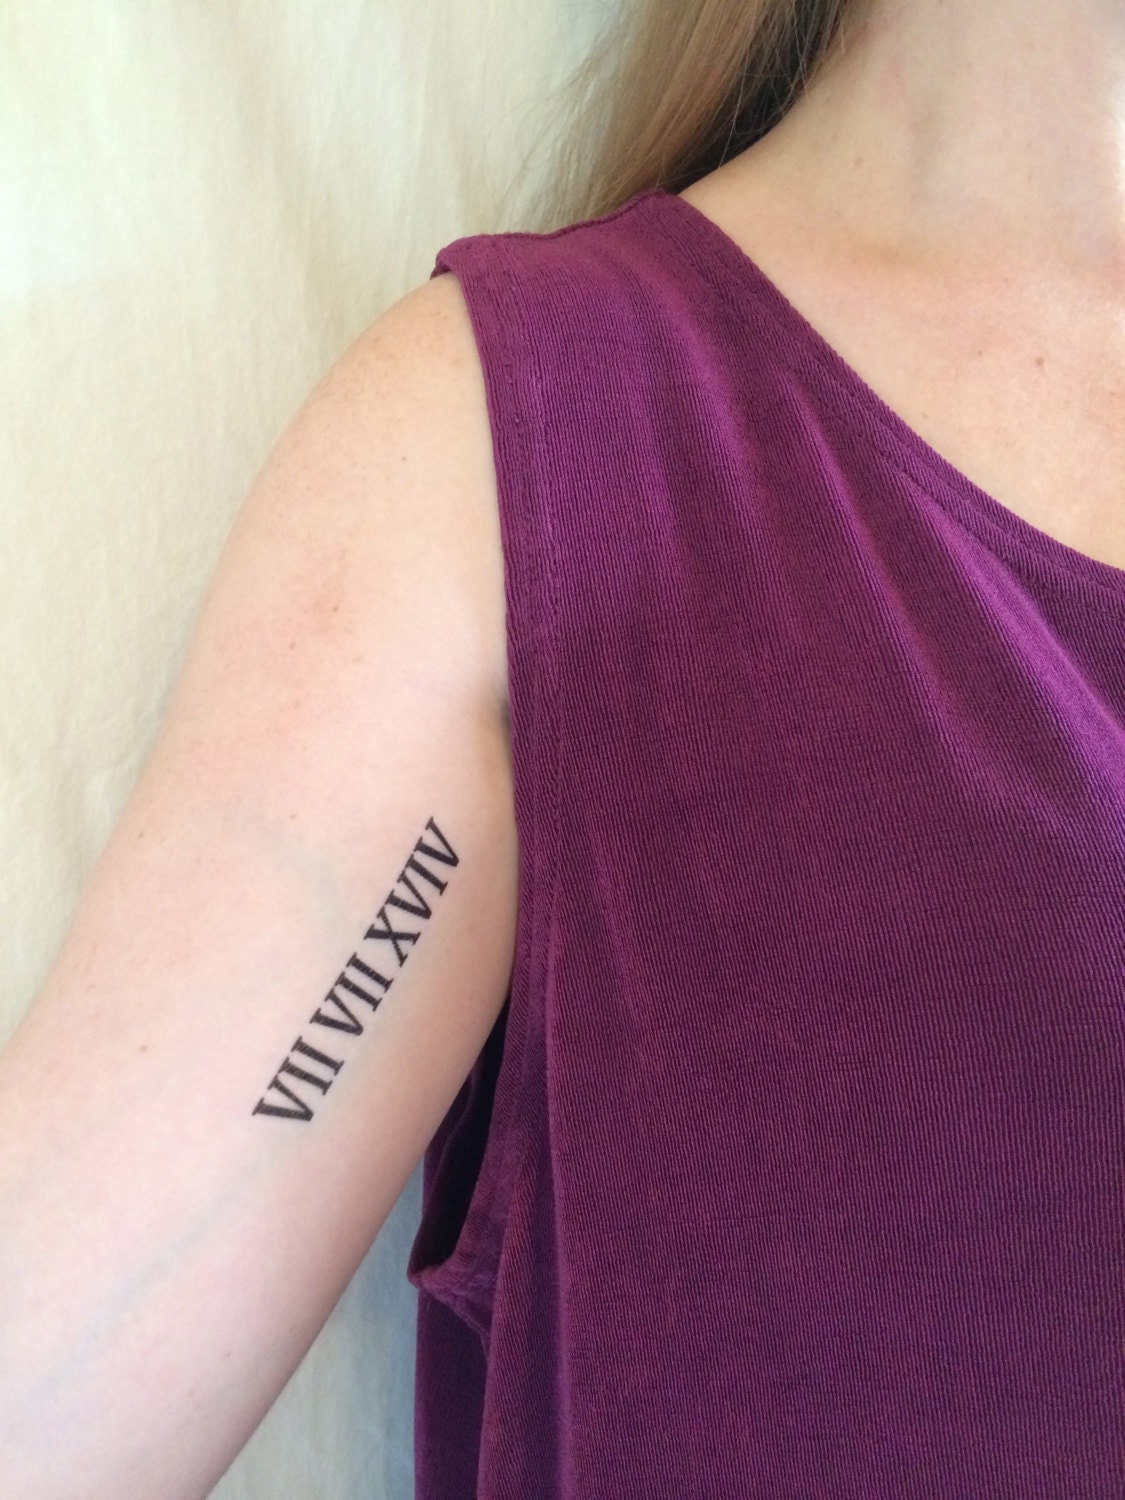 2 Roman Numeral Temporary Tattoos  SmashTat